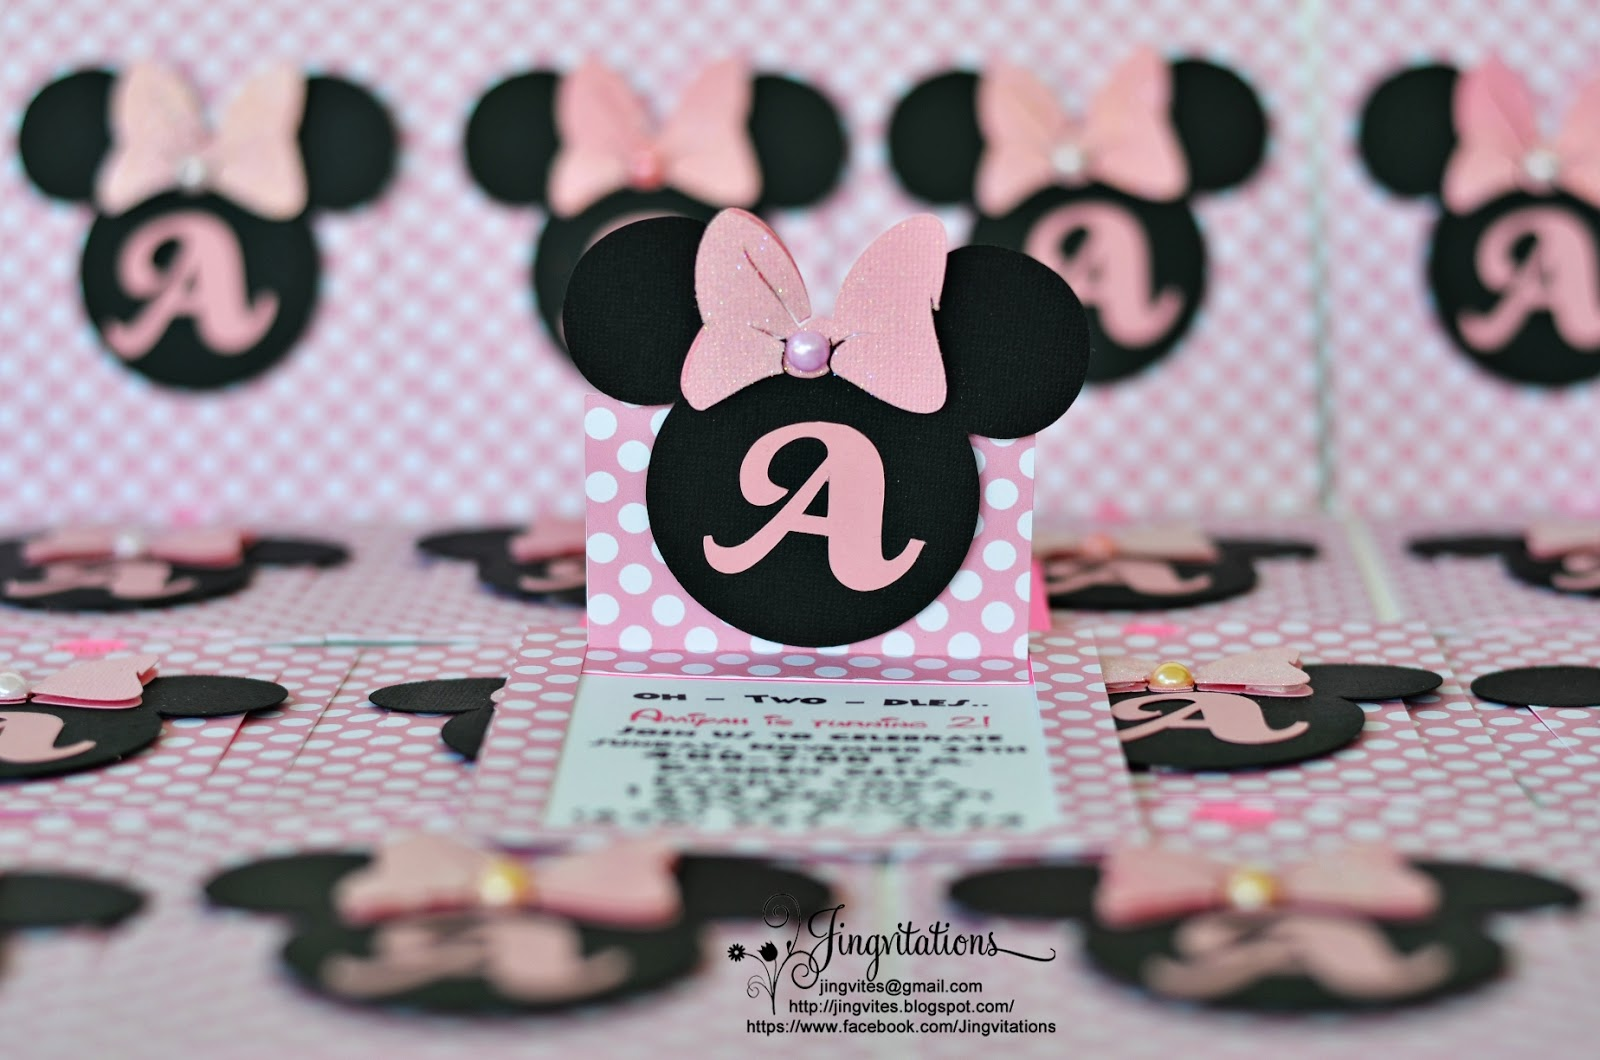 Jingvitations Cricut Handmade Minnie Mouse Pop Up Invitations